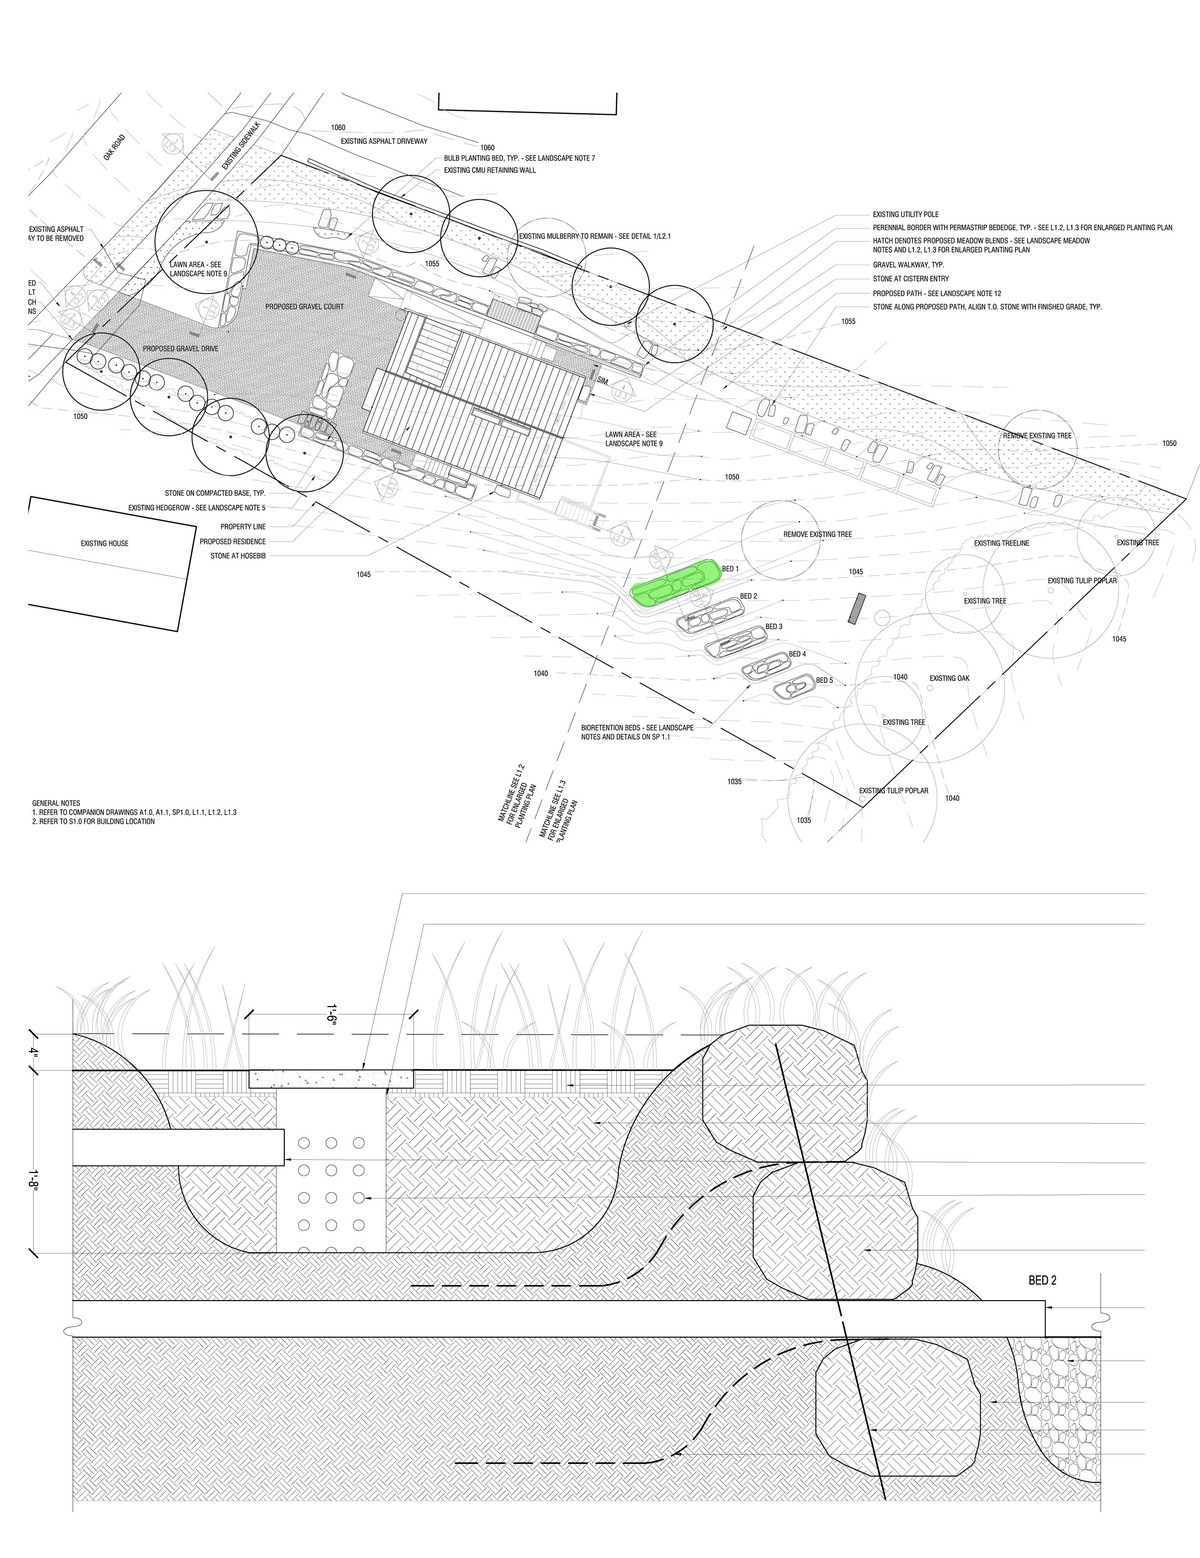 Site plan and greywater bed section